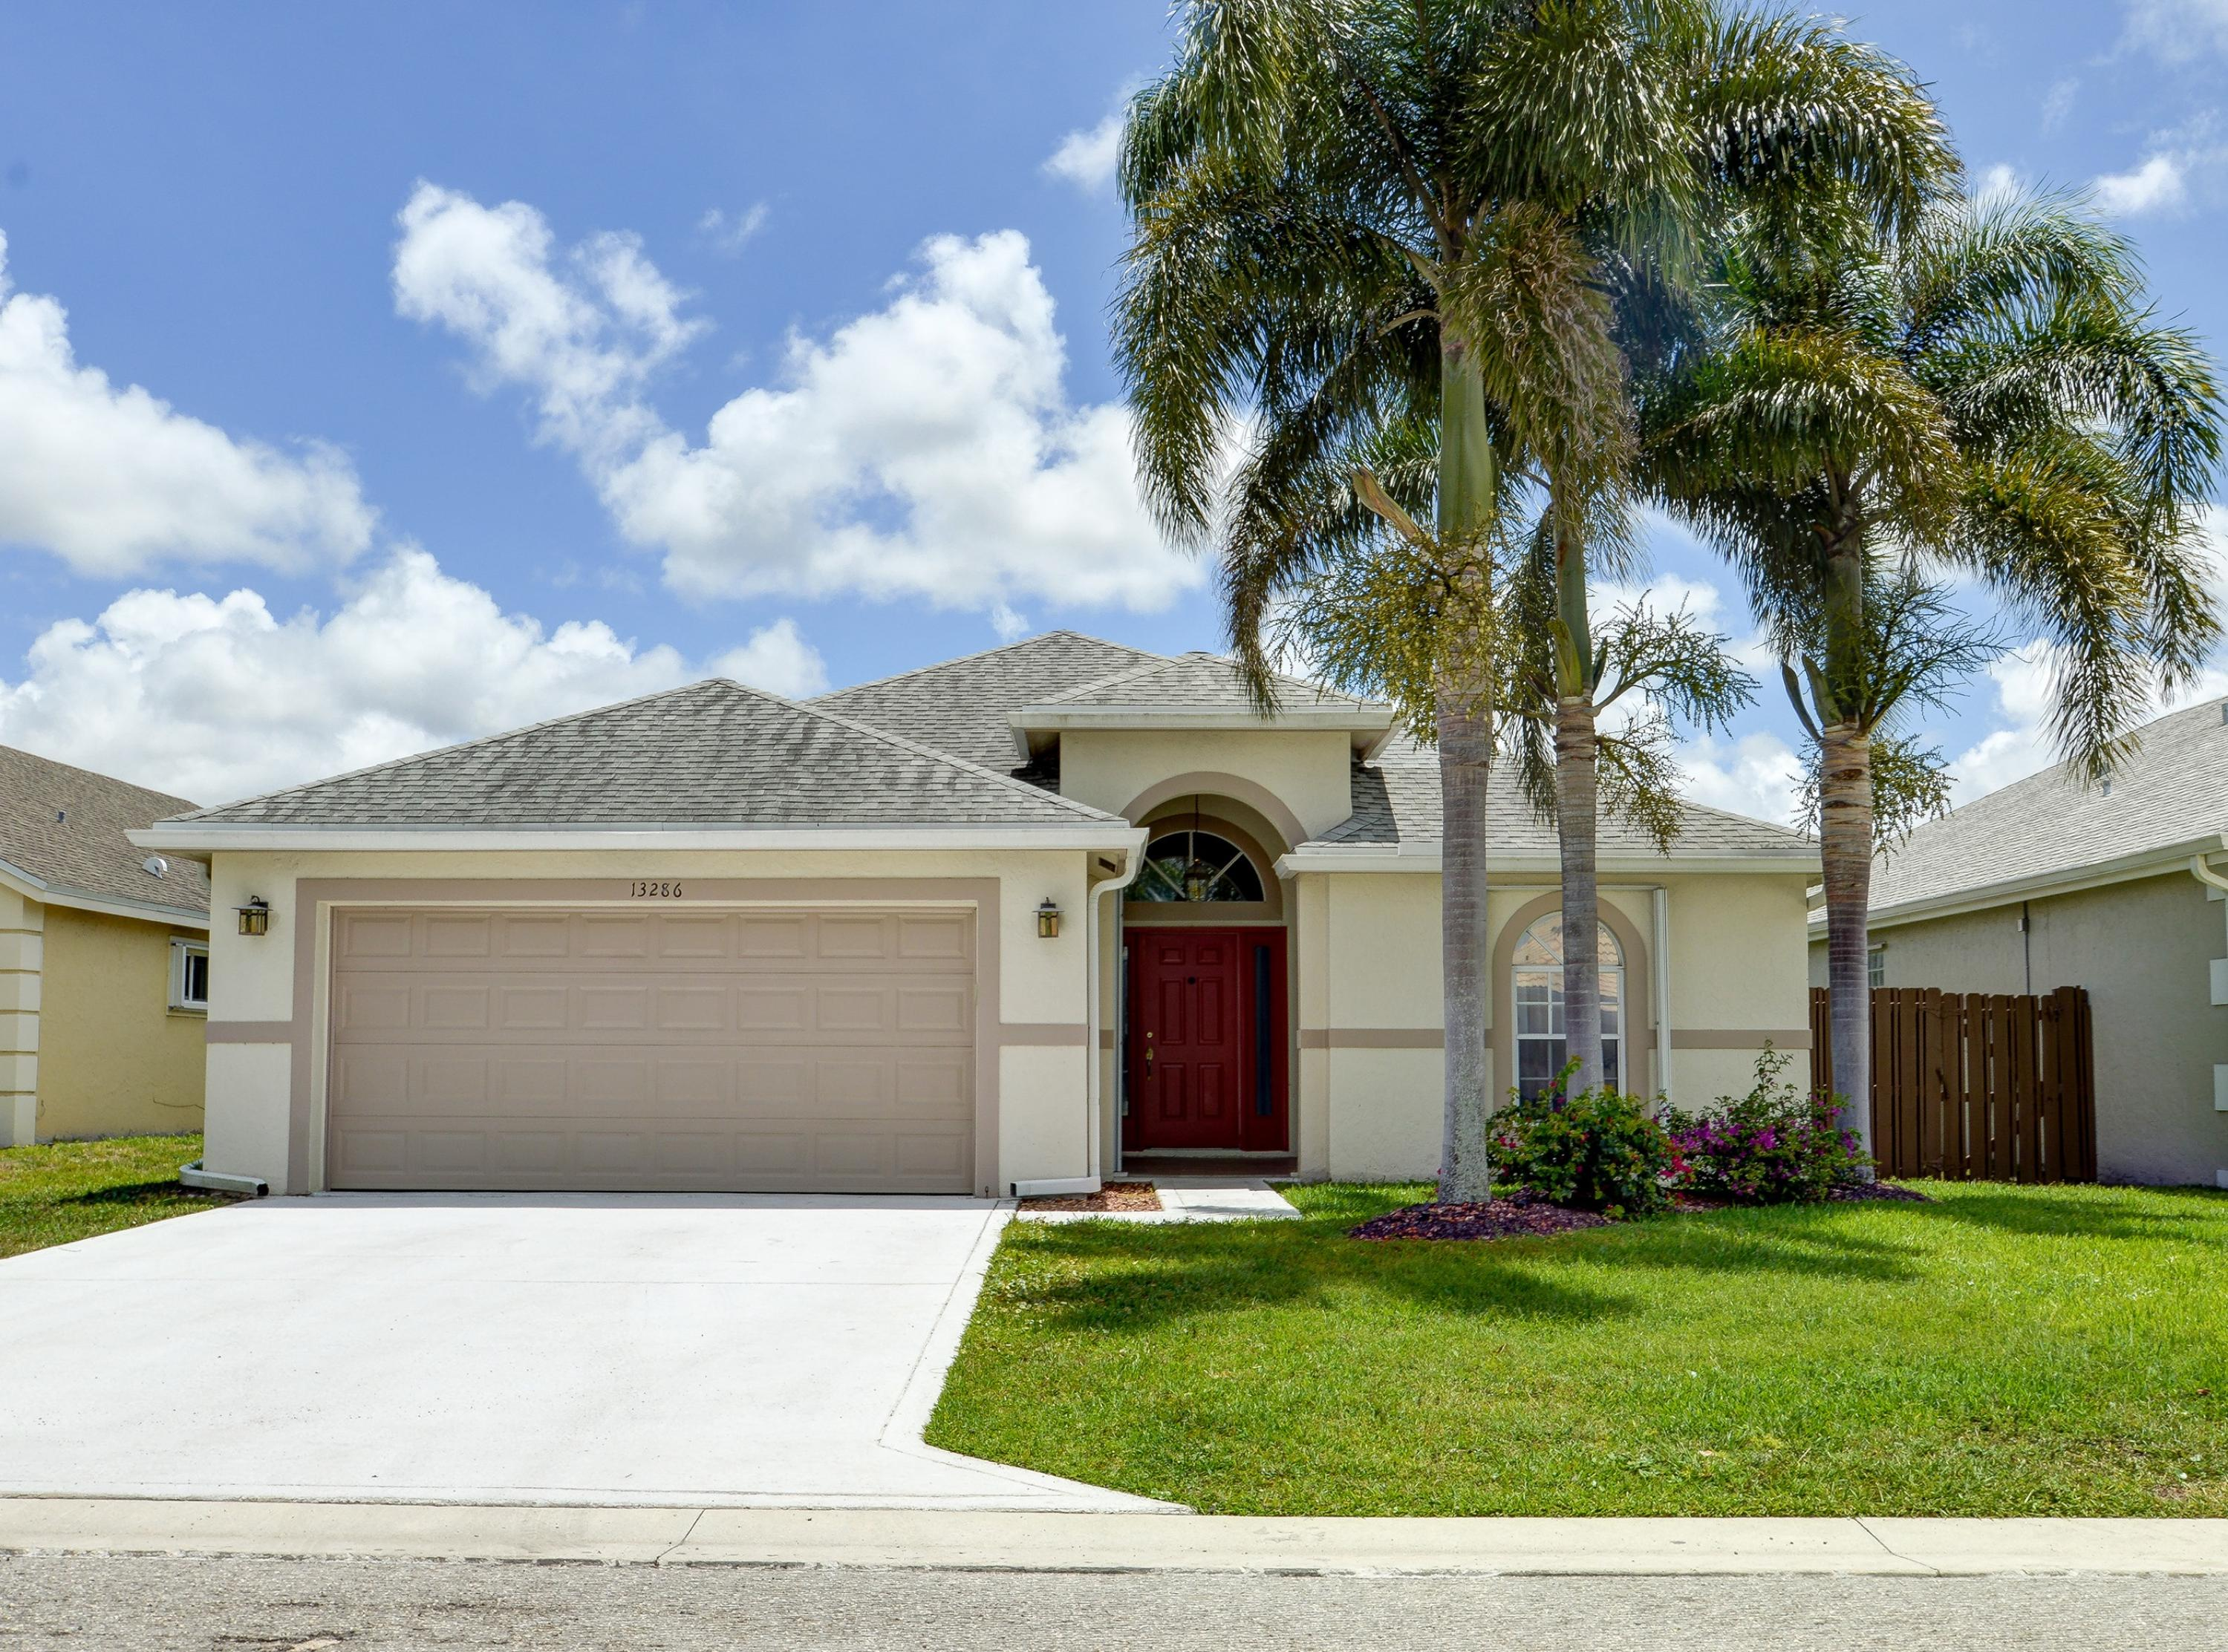 13286 Moonstone Terrace - Wellington, Florida